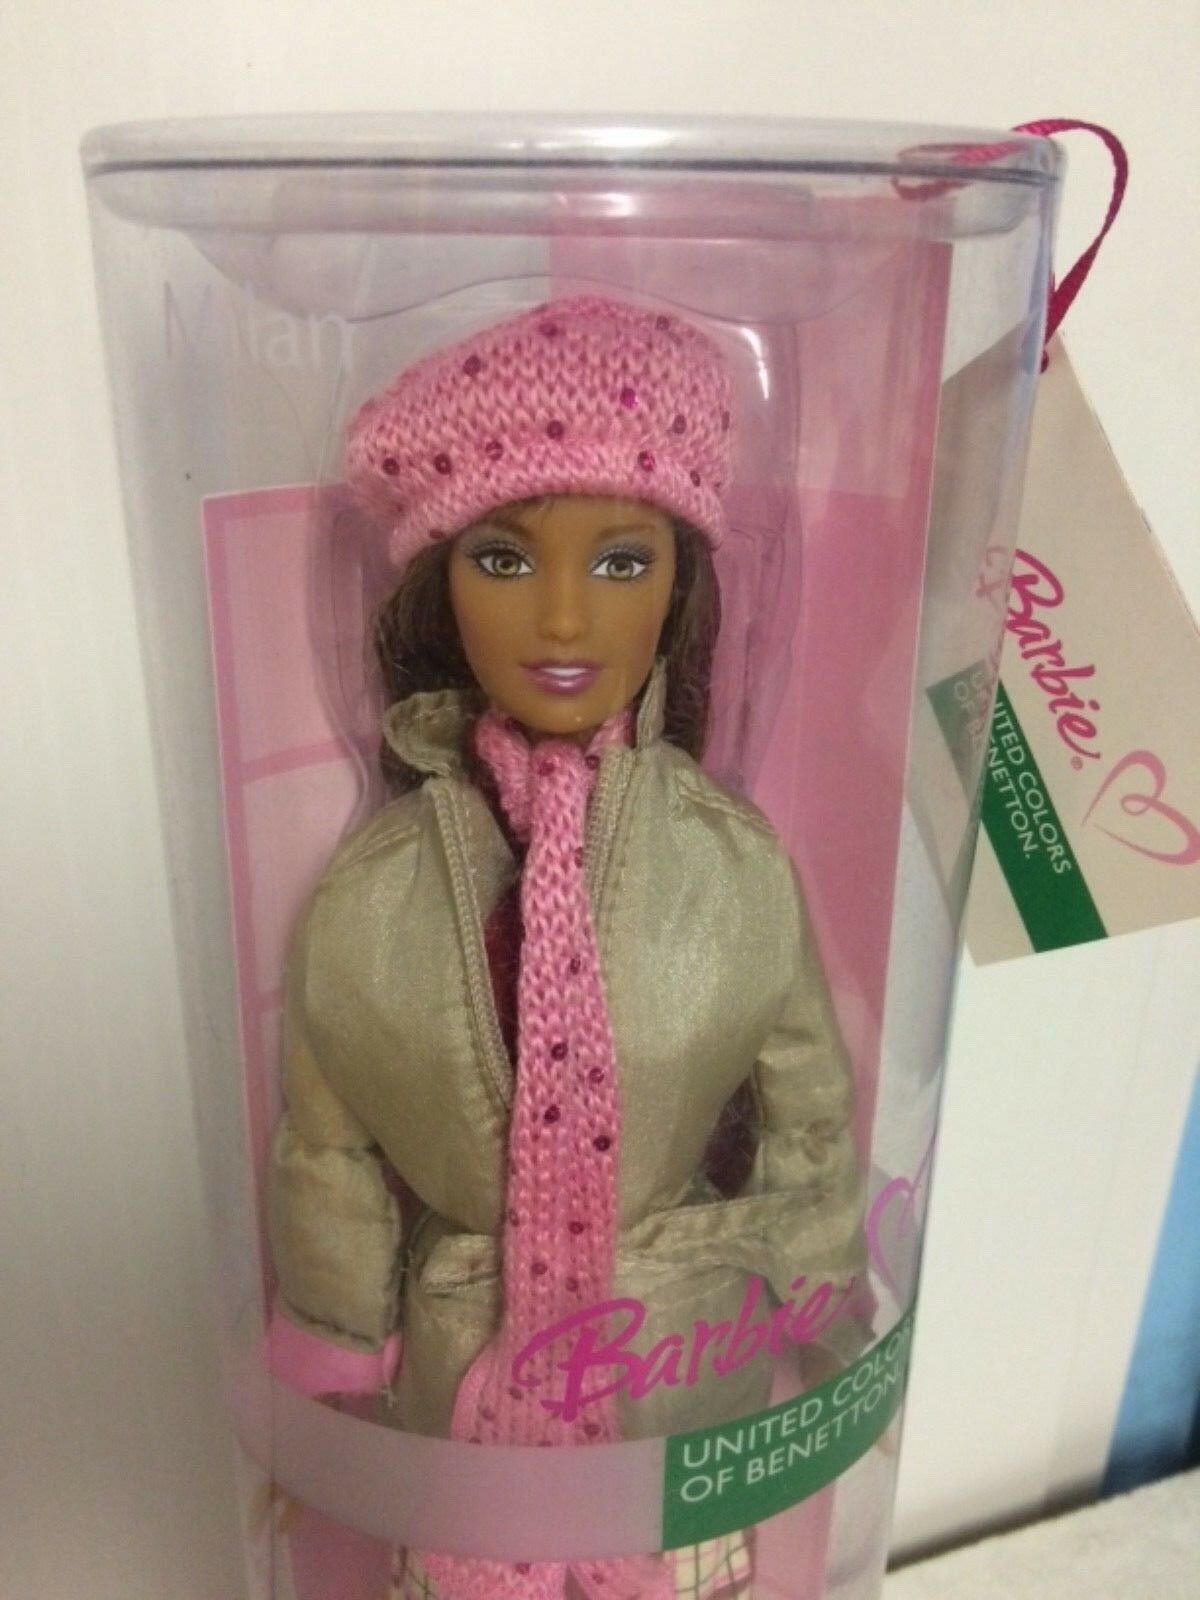 Fashion fever, Benetton exclusive Milan barbie doll